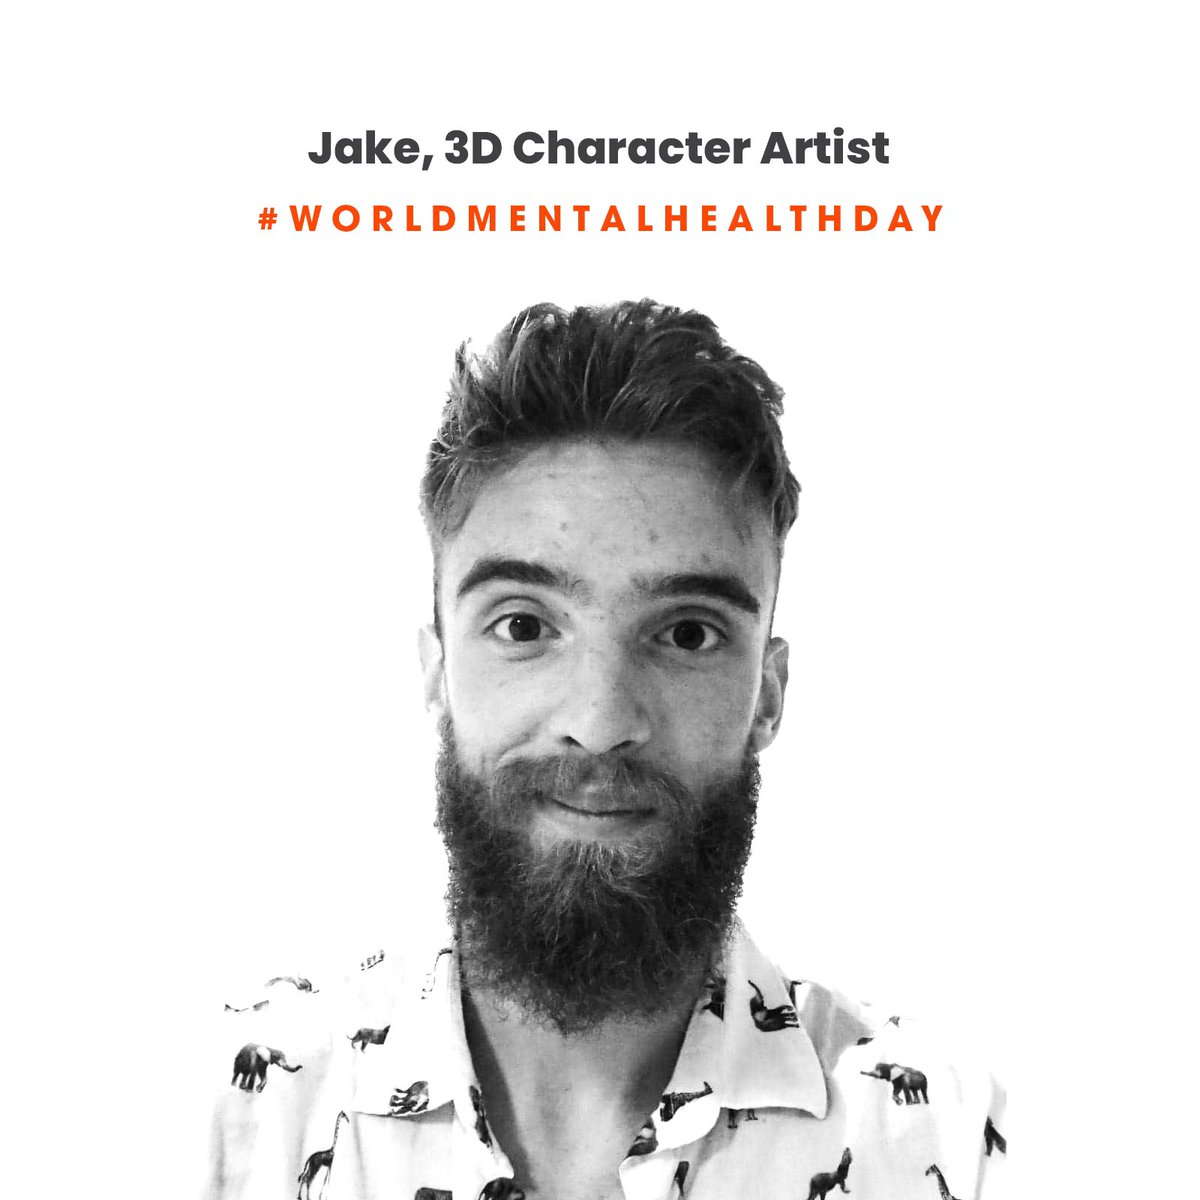 For the fifth of our #worldmentalhealthday chats with the Playground Games team we have Jake. Remember to take a moment to reflect and ask yourself, as well as others, how are we doing. https://t.co/ivymetEU0z